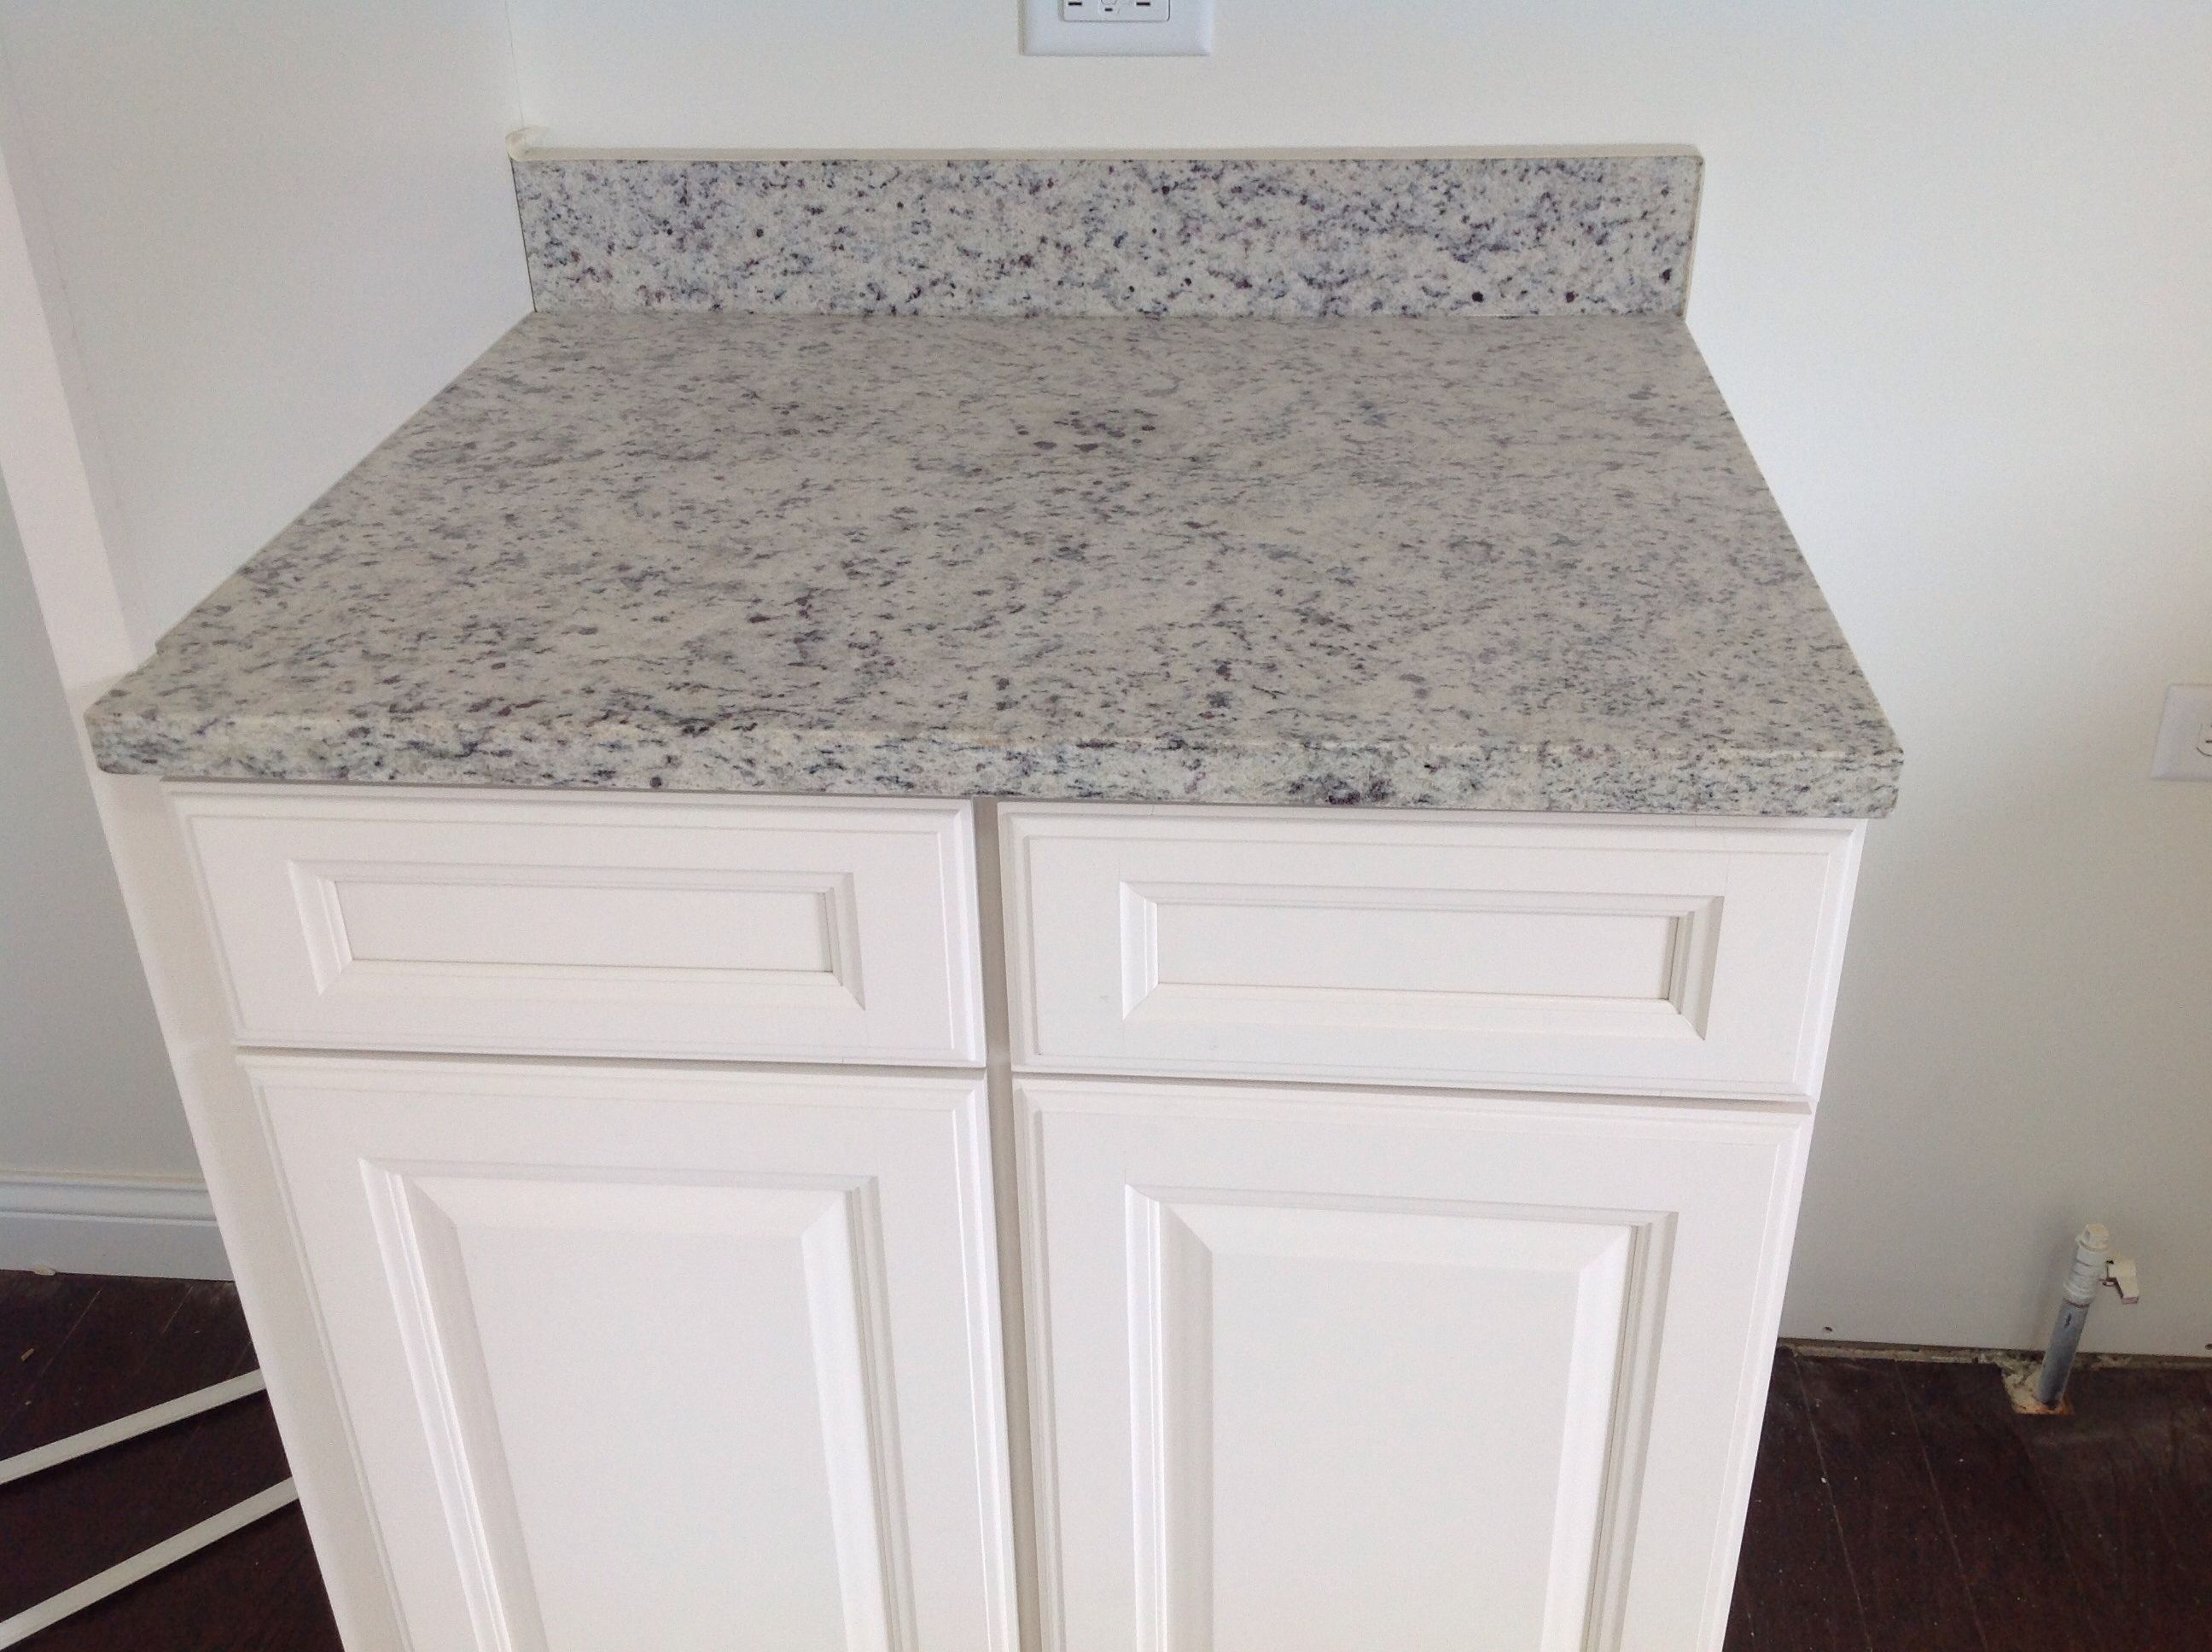 Dallas White Granite And White Cabinets...this Is What Is Going Into Our